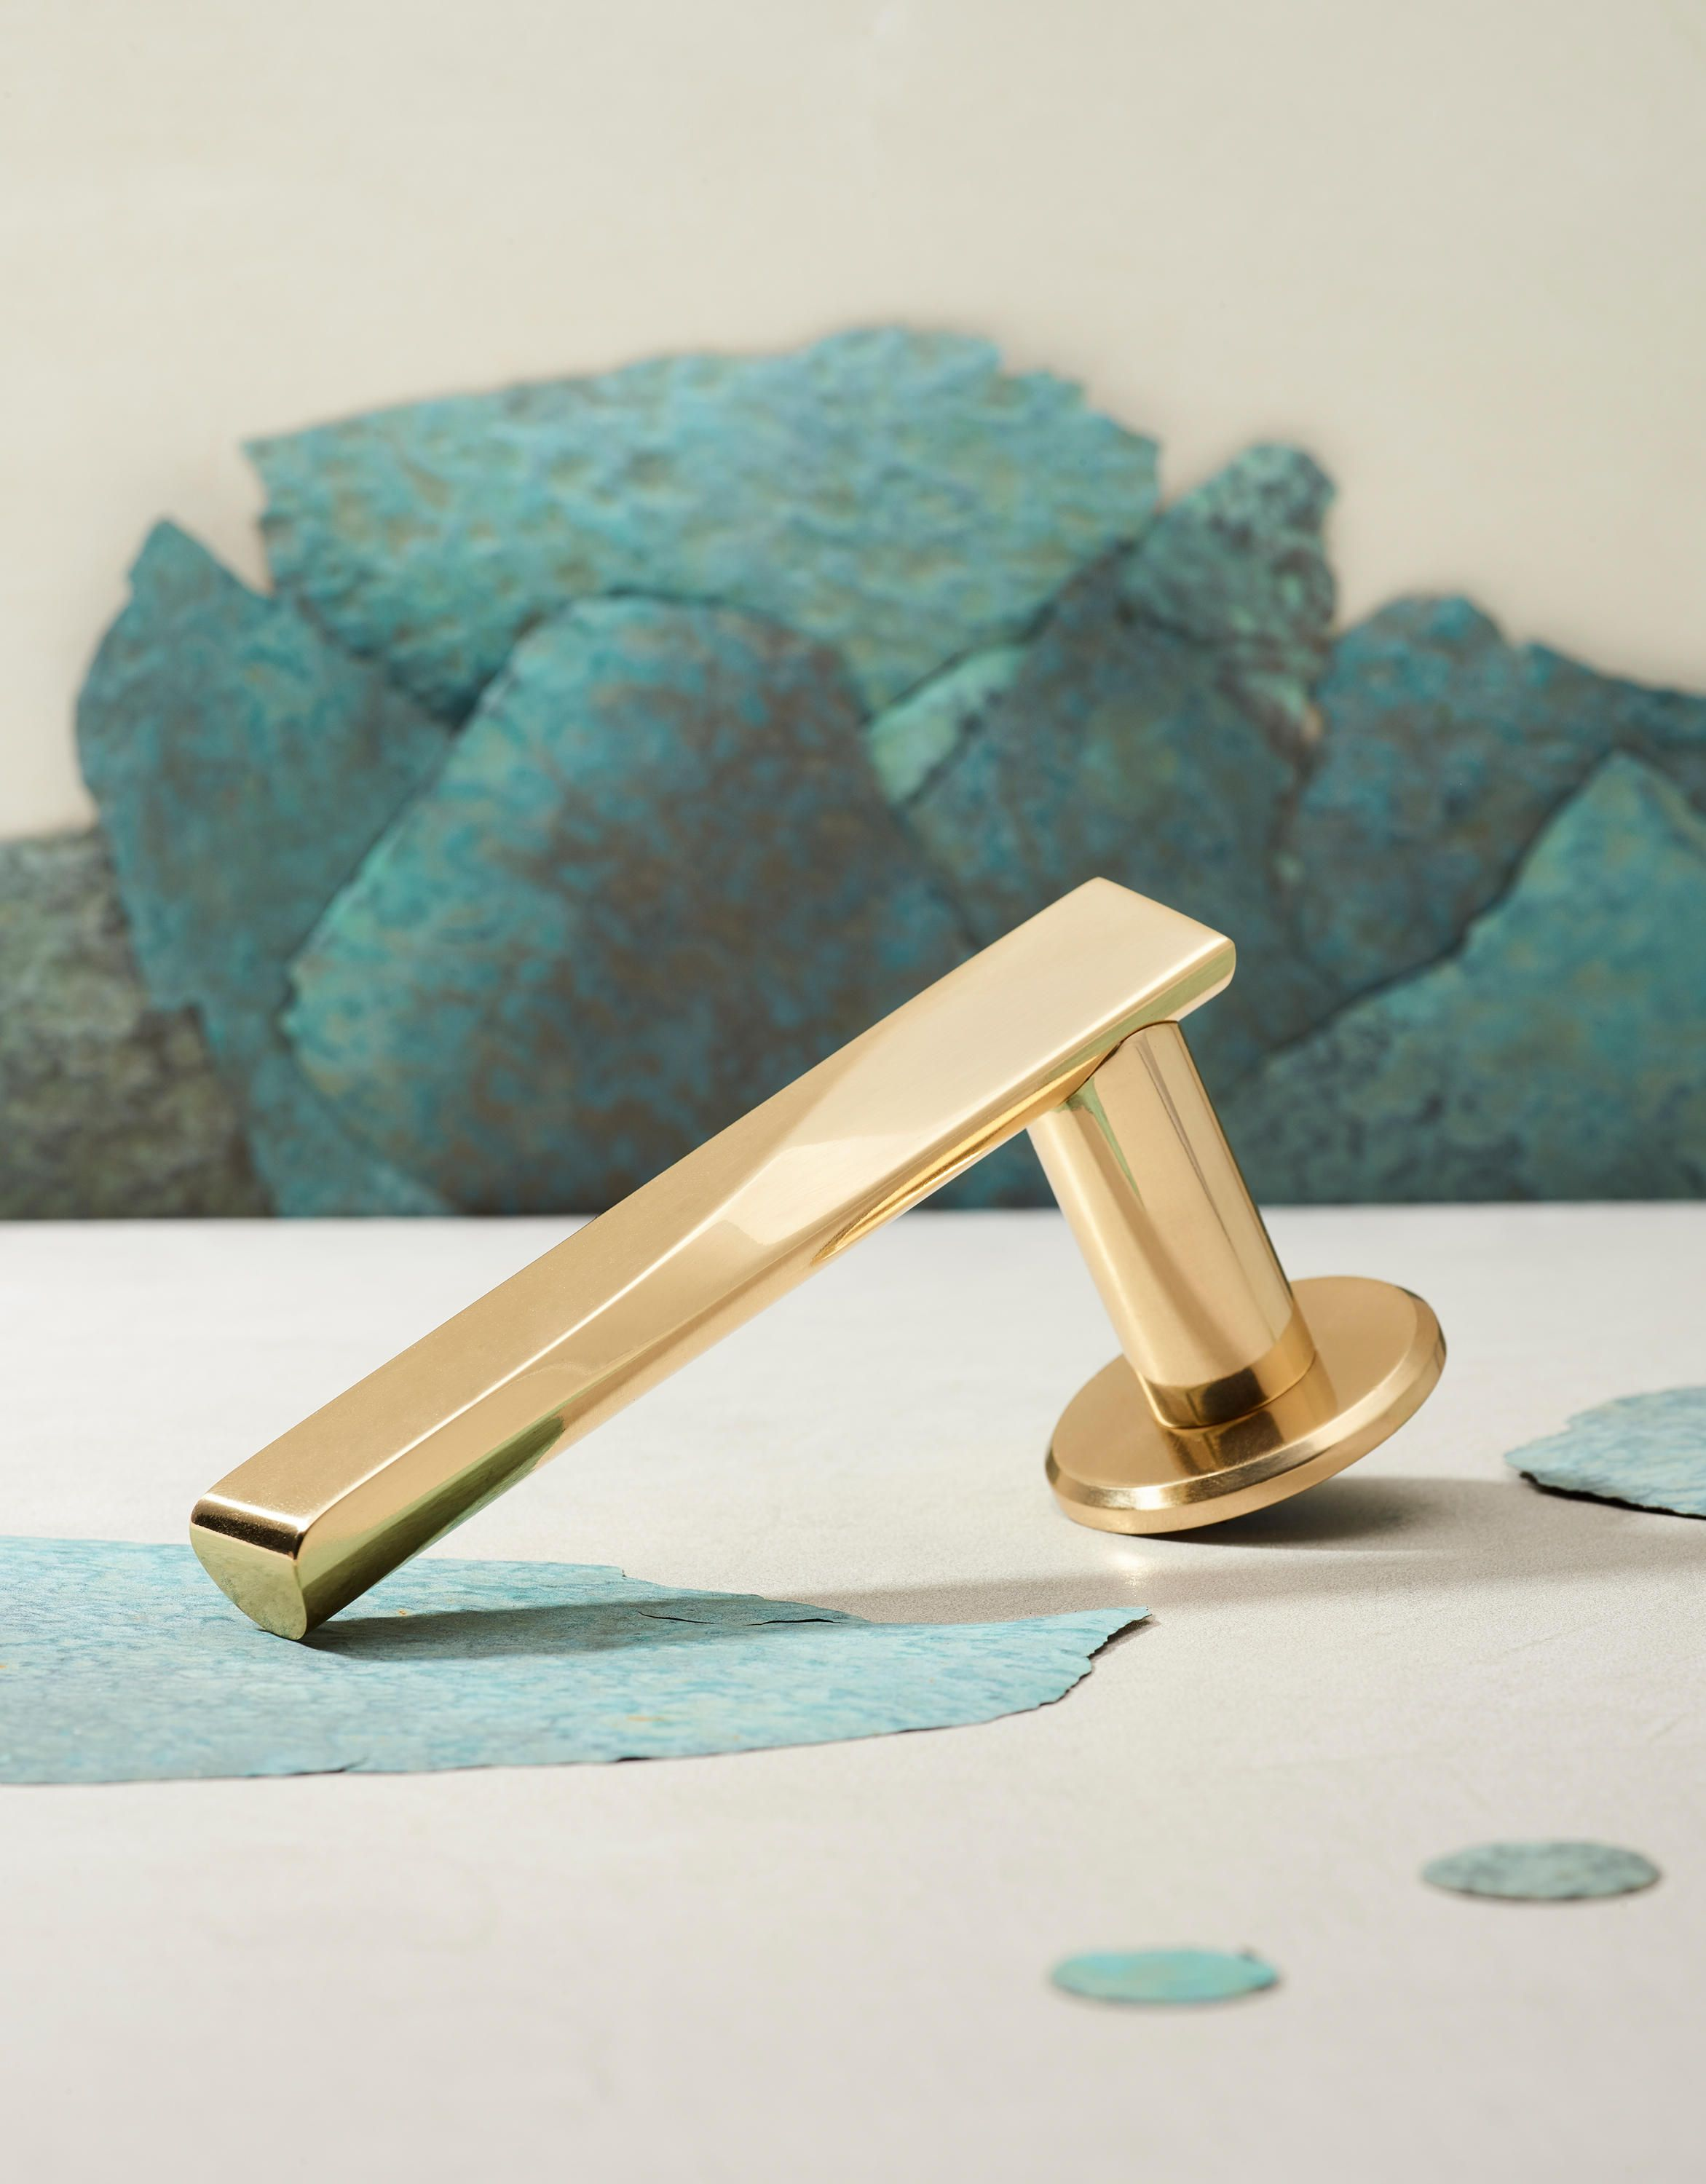 Ballet Light Lever Handle by Vervloet #architonic # ...